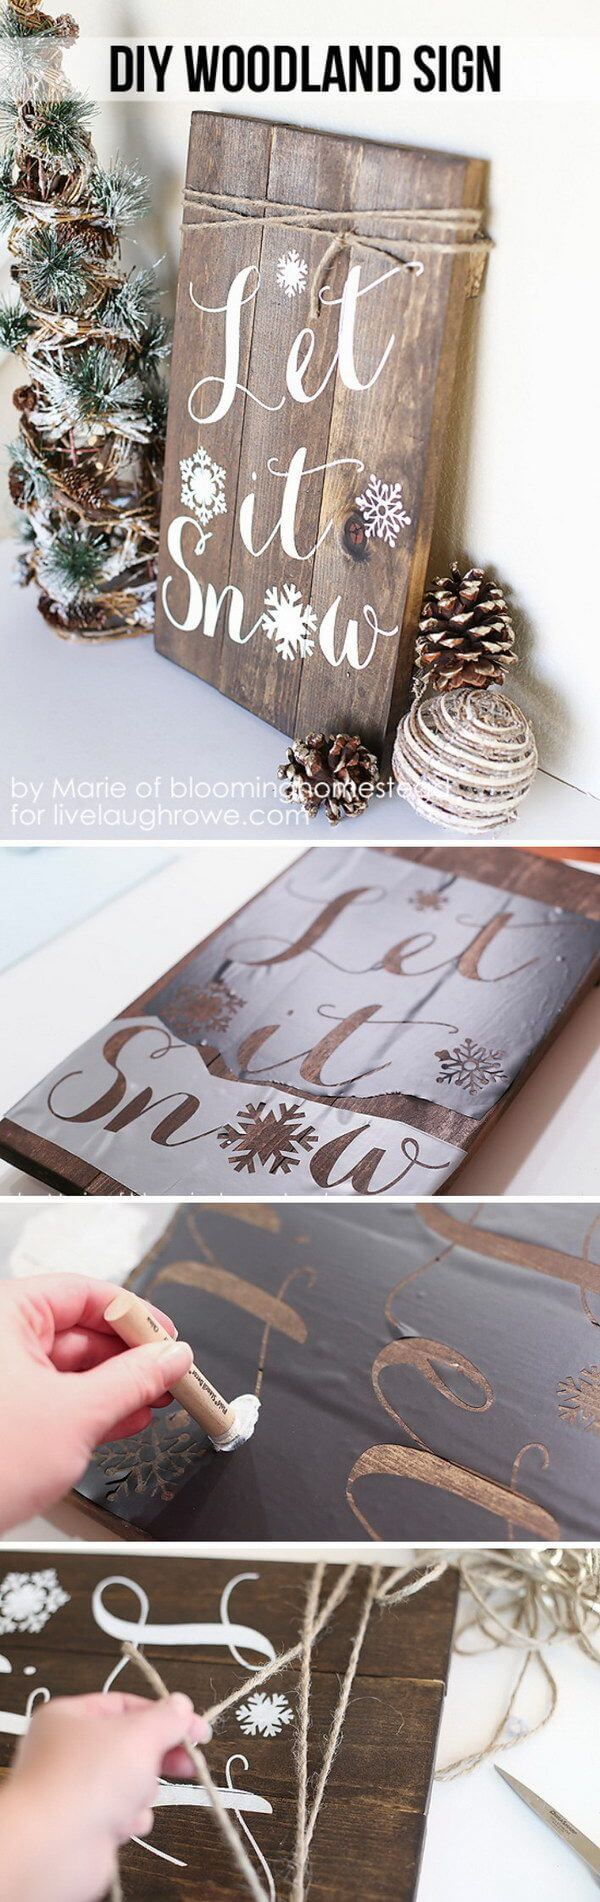 Wood Signs Ideas - Simple Stenciled Holiday Panel - harpmagazine.com